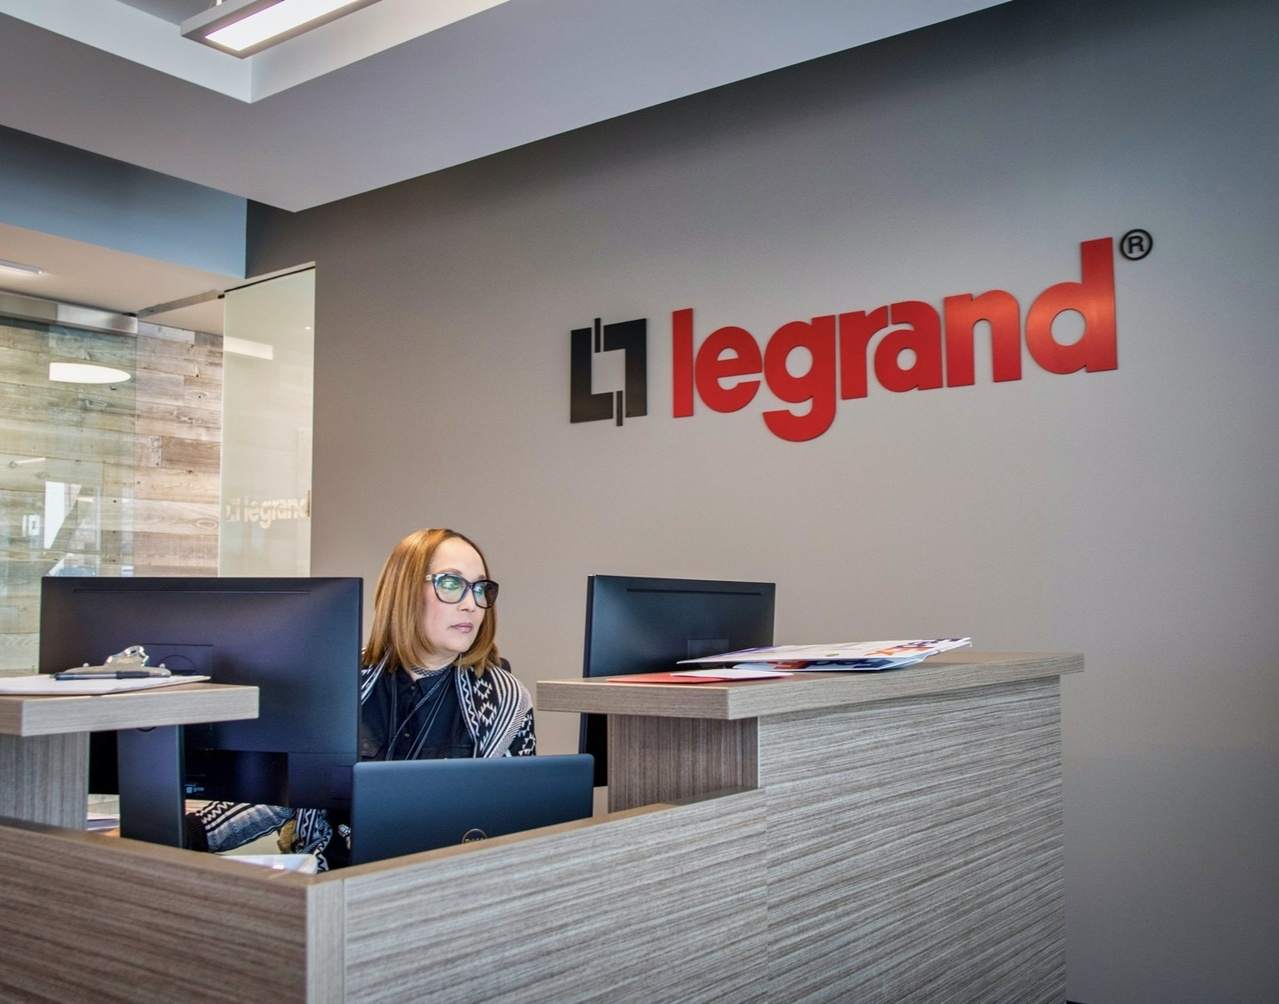 Woman sitting at a desk looking at her computer in front of a gray wall with the Legrand logo printed on it